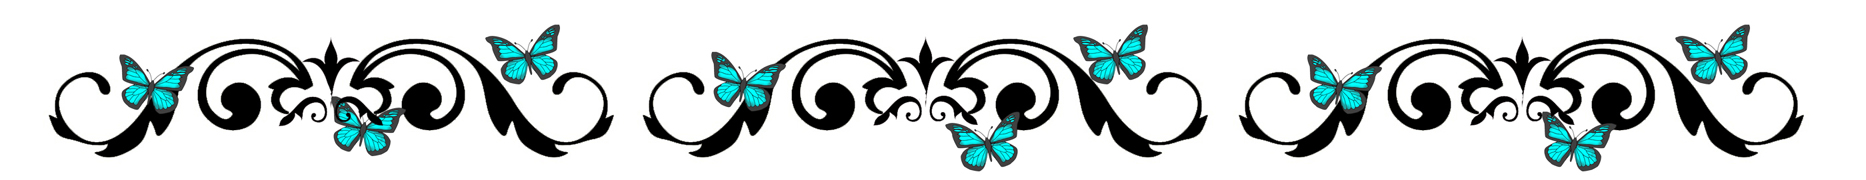 blue butterfly border